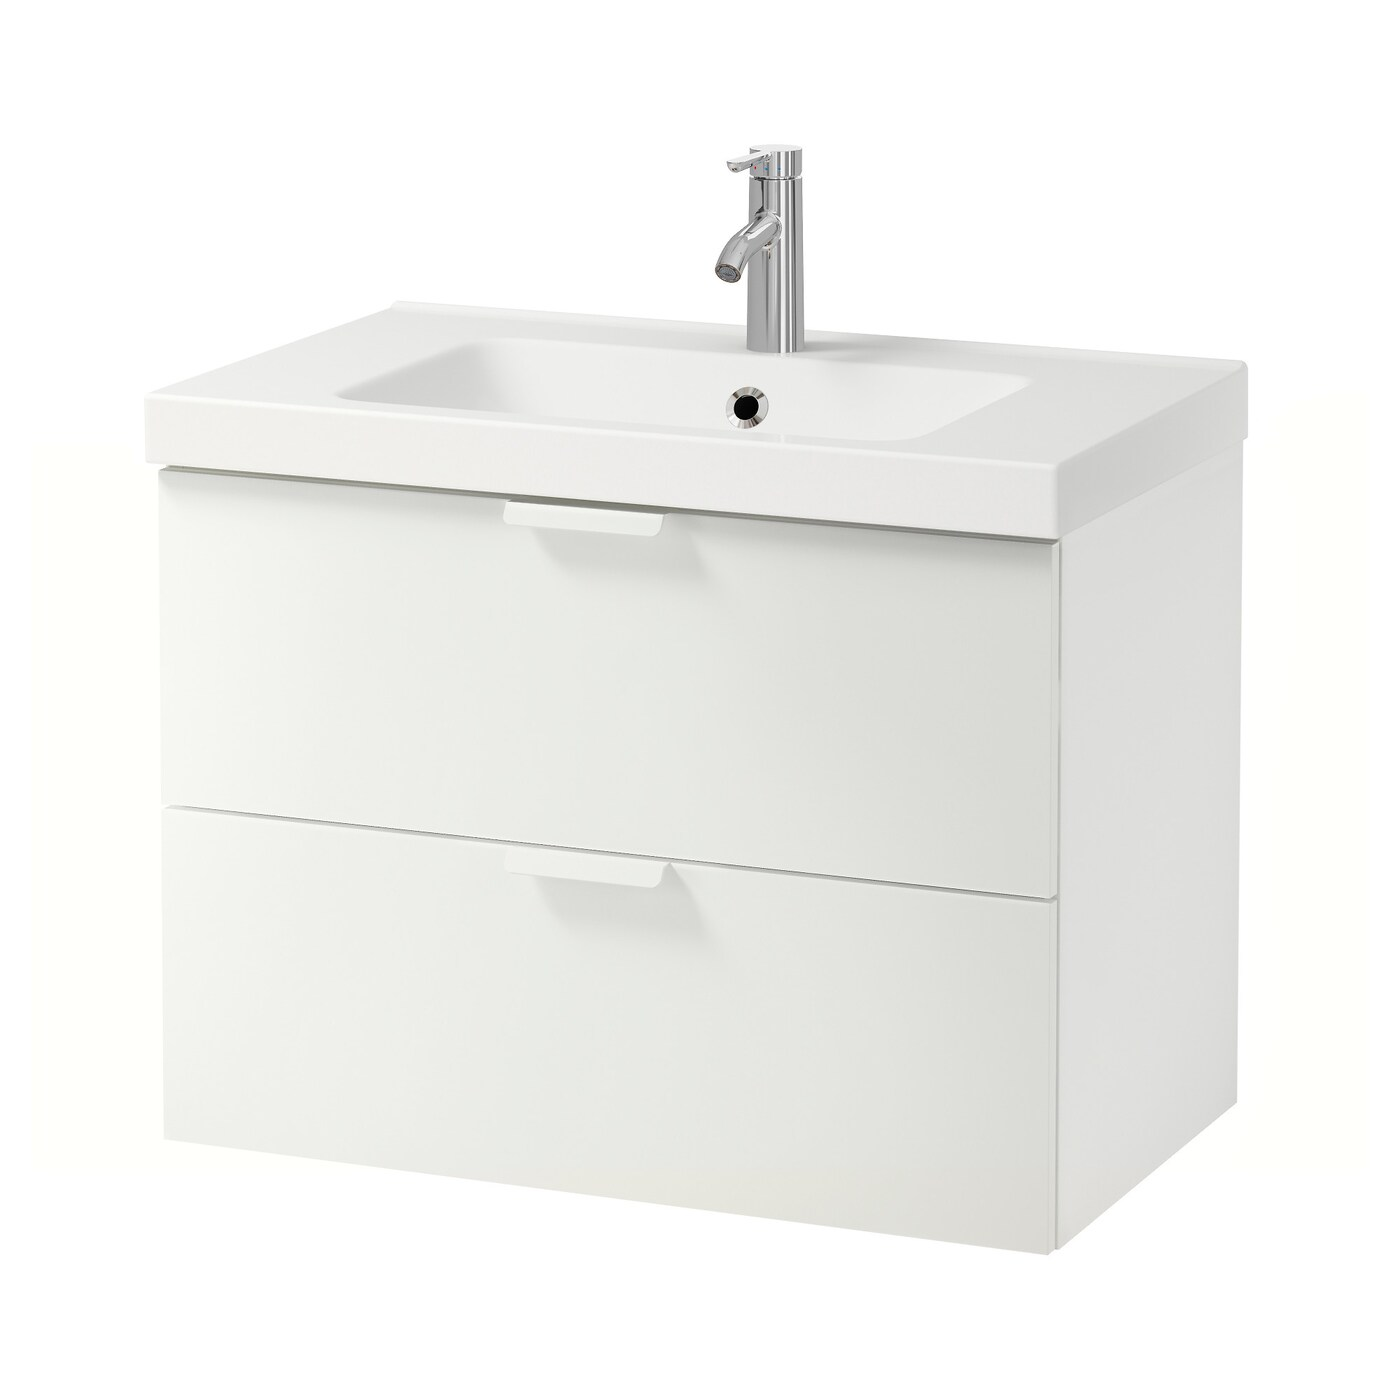 godmorgonodensvik wash stand with 2 drawers white 80x49x64 cm ikea - Meuble Lave Main Ikea